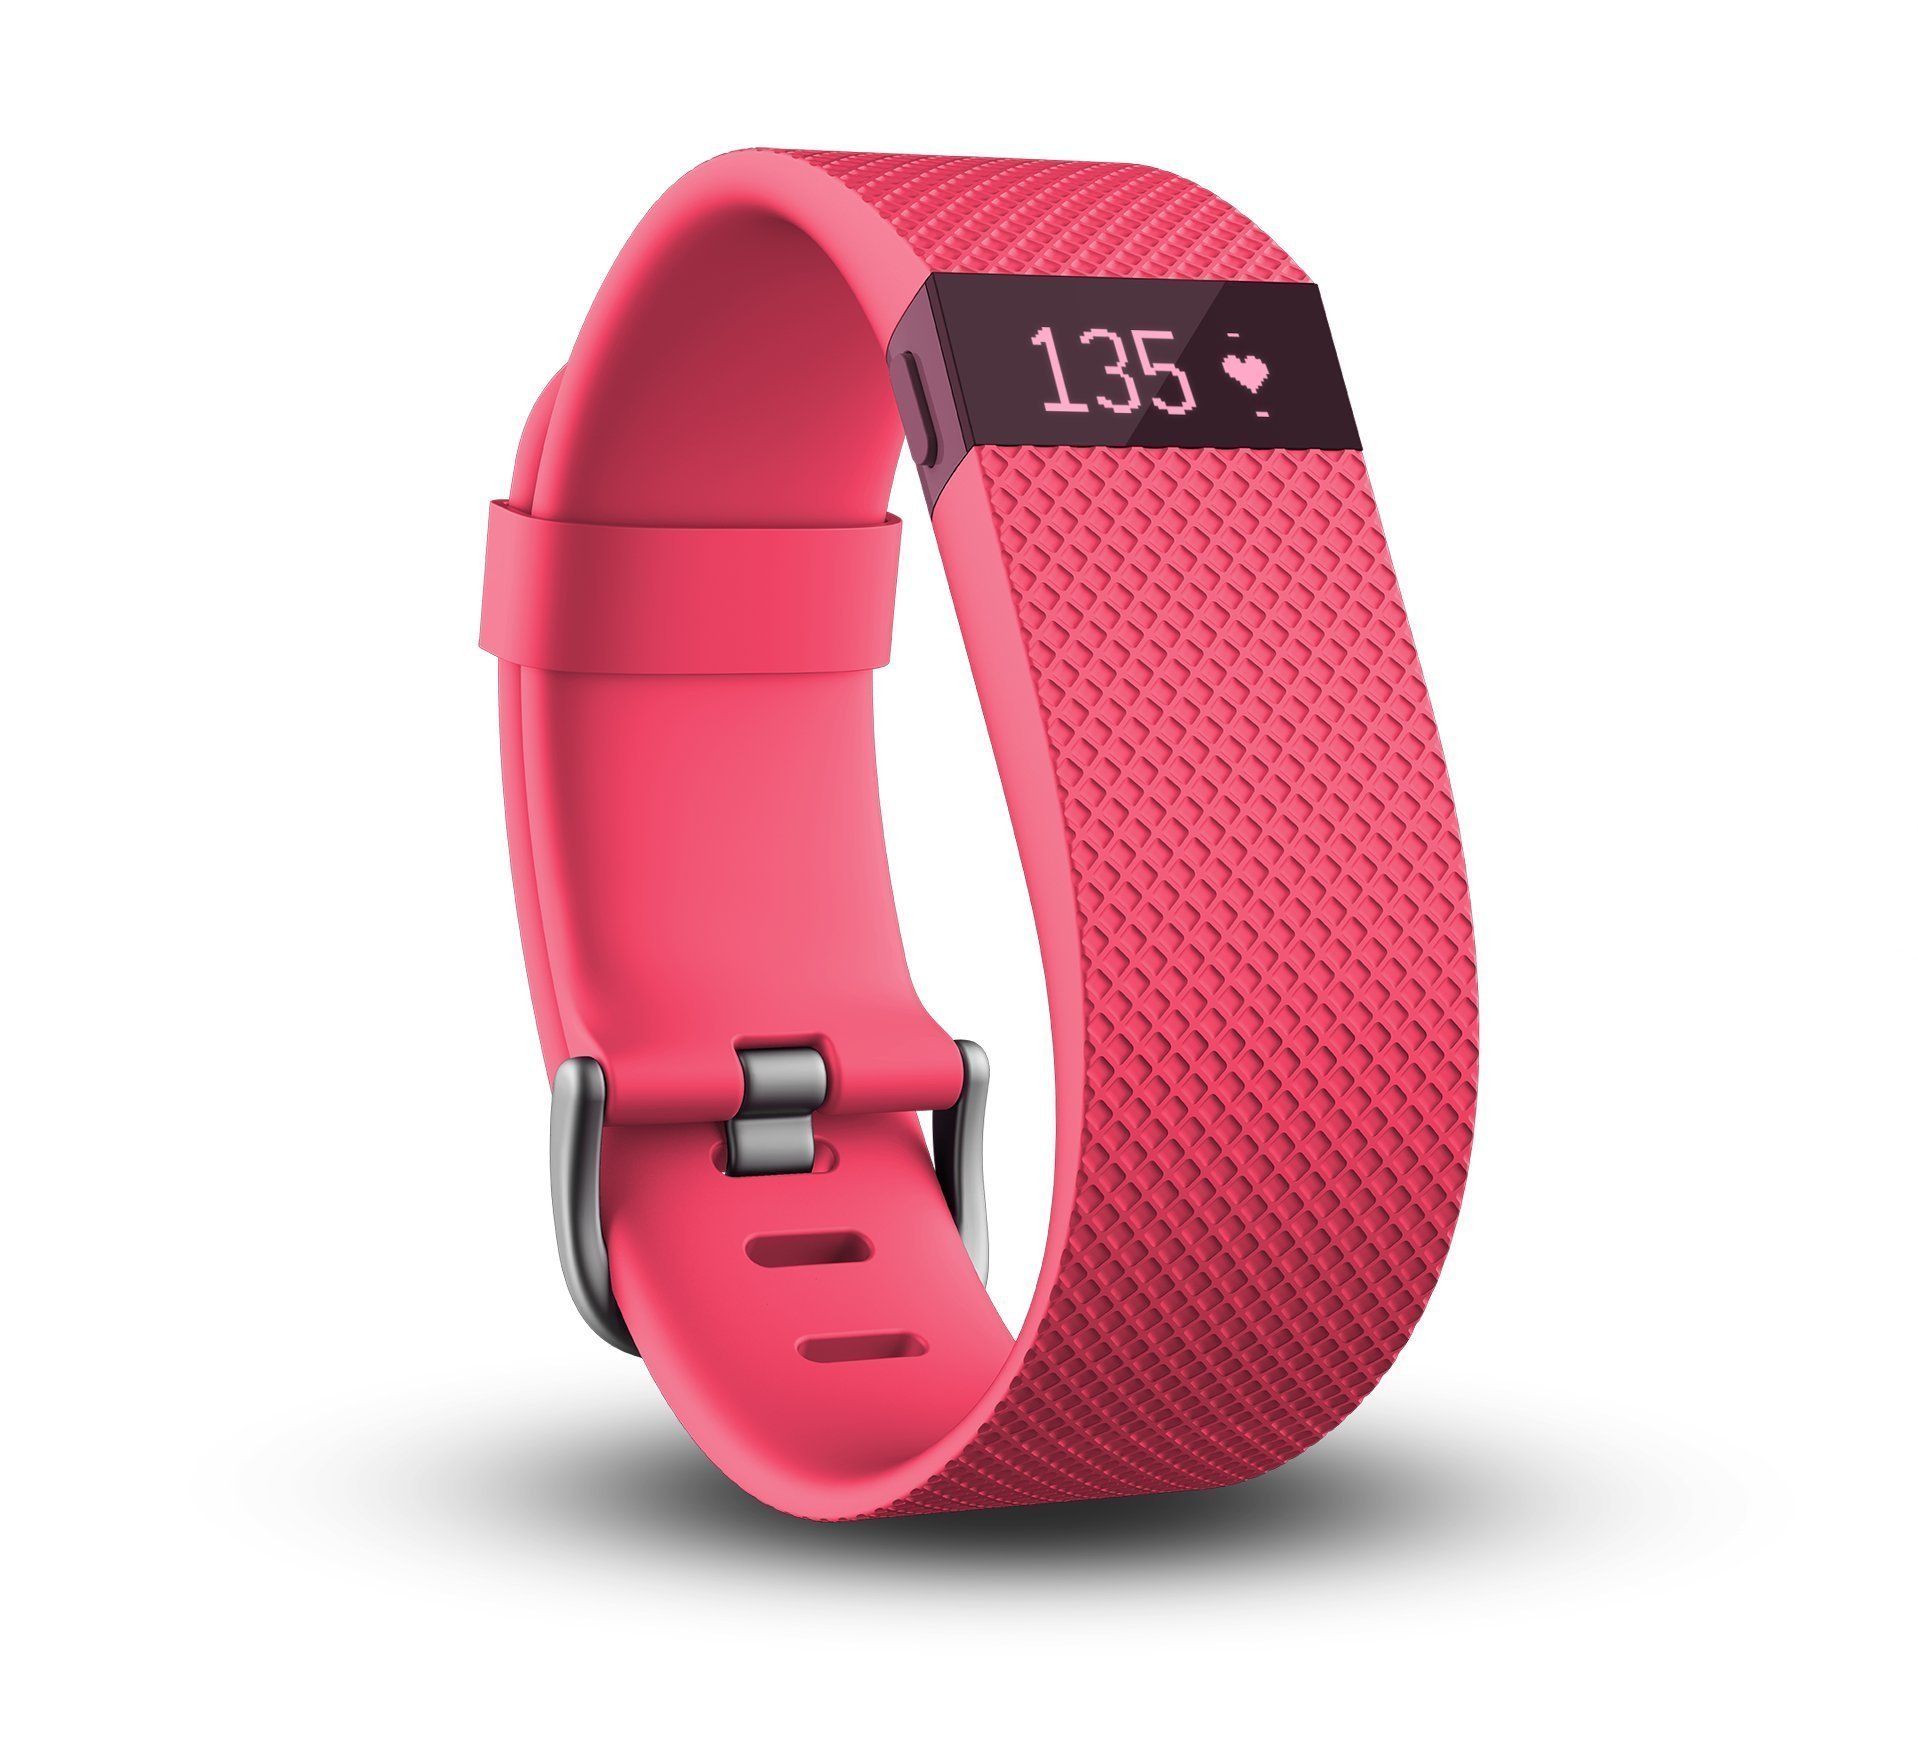 Fitbit Charge HR Wireless Activity Wristband (Pink, Small (5.4 - 6.2 in))